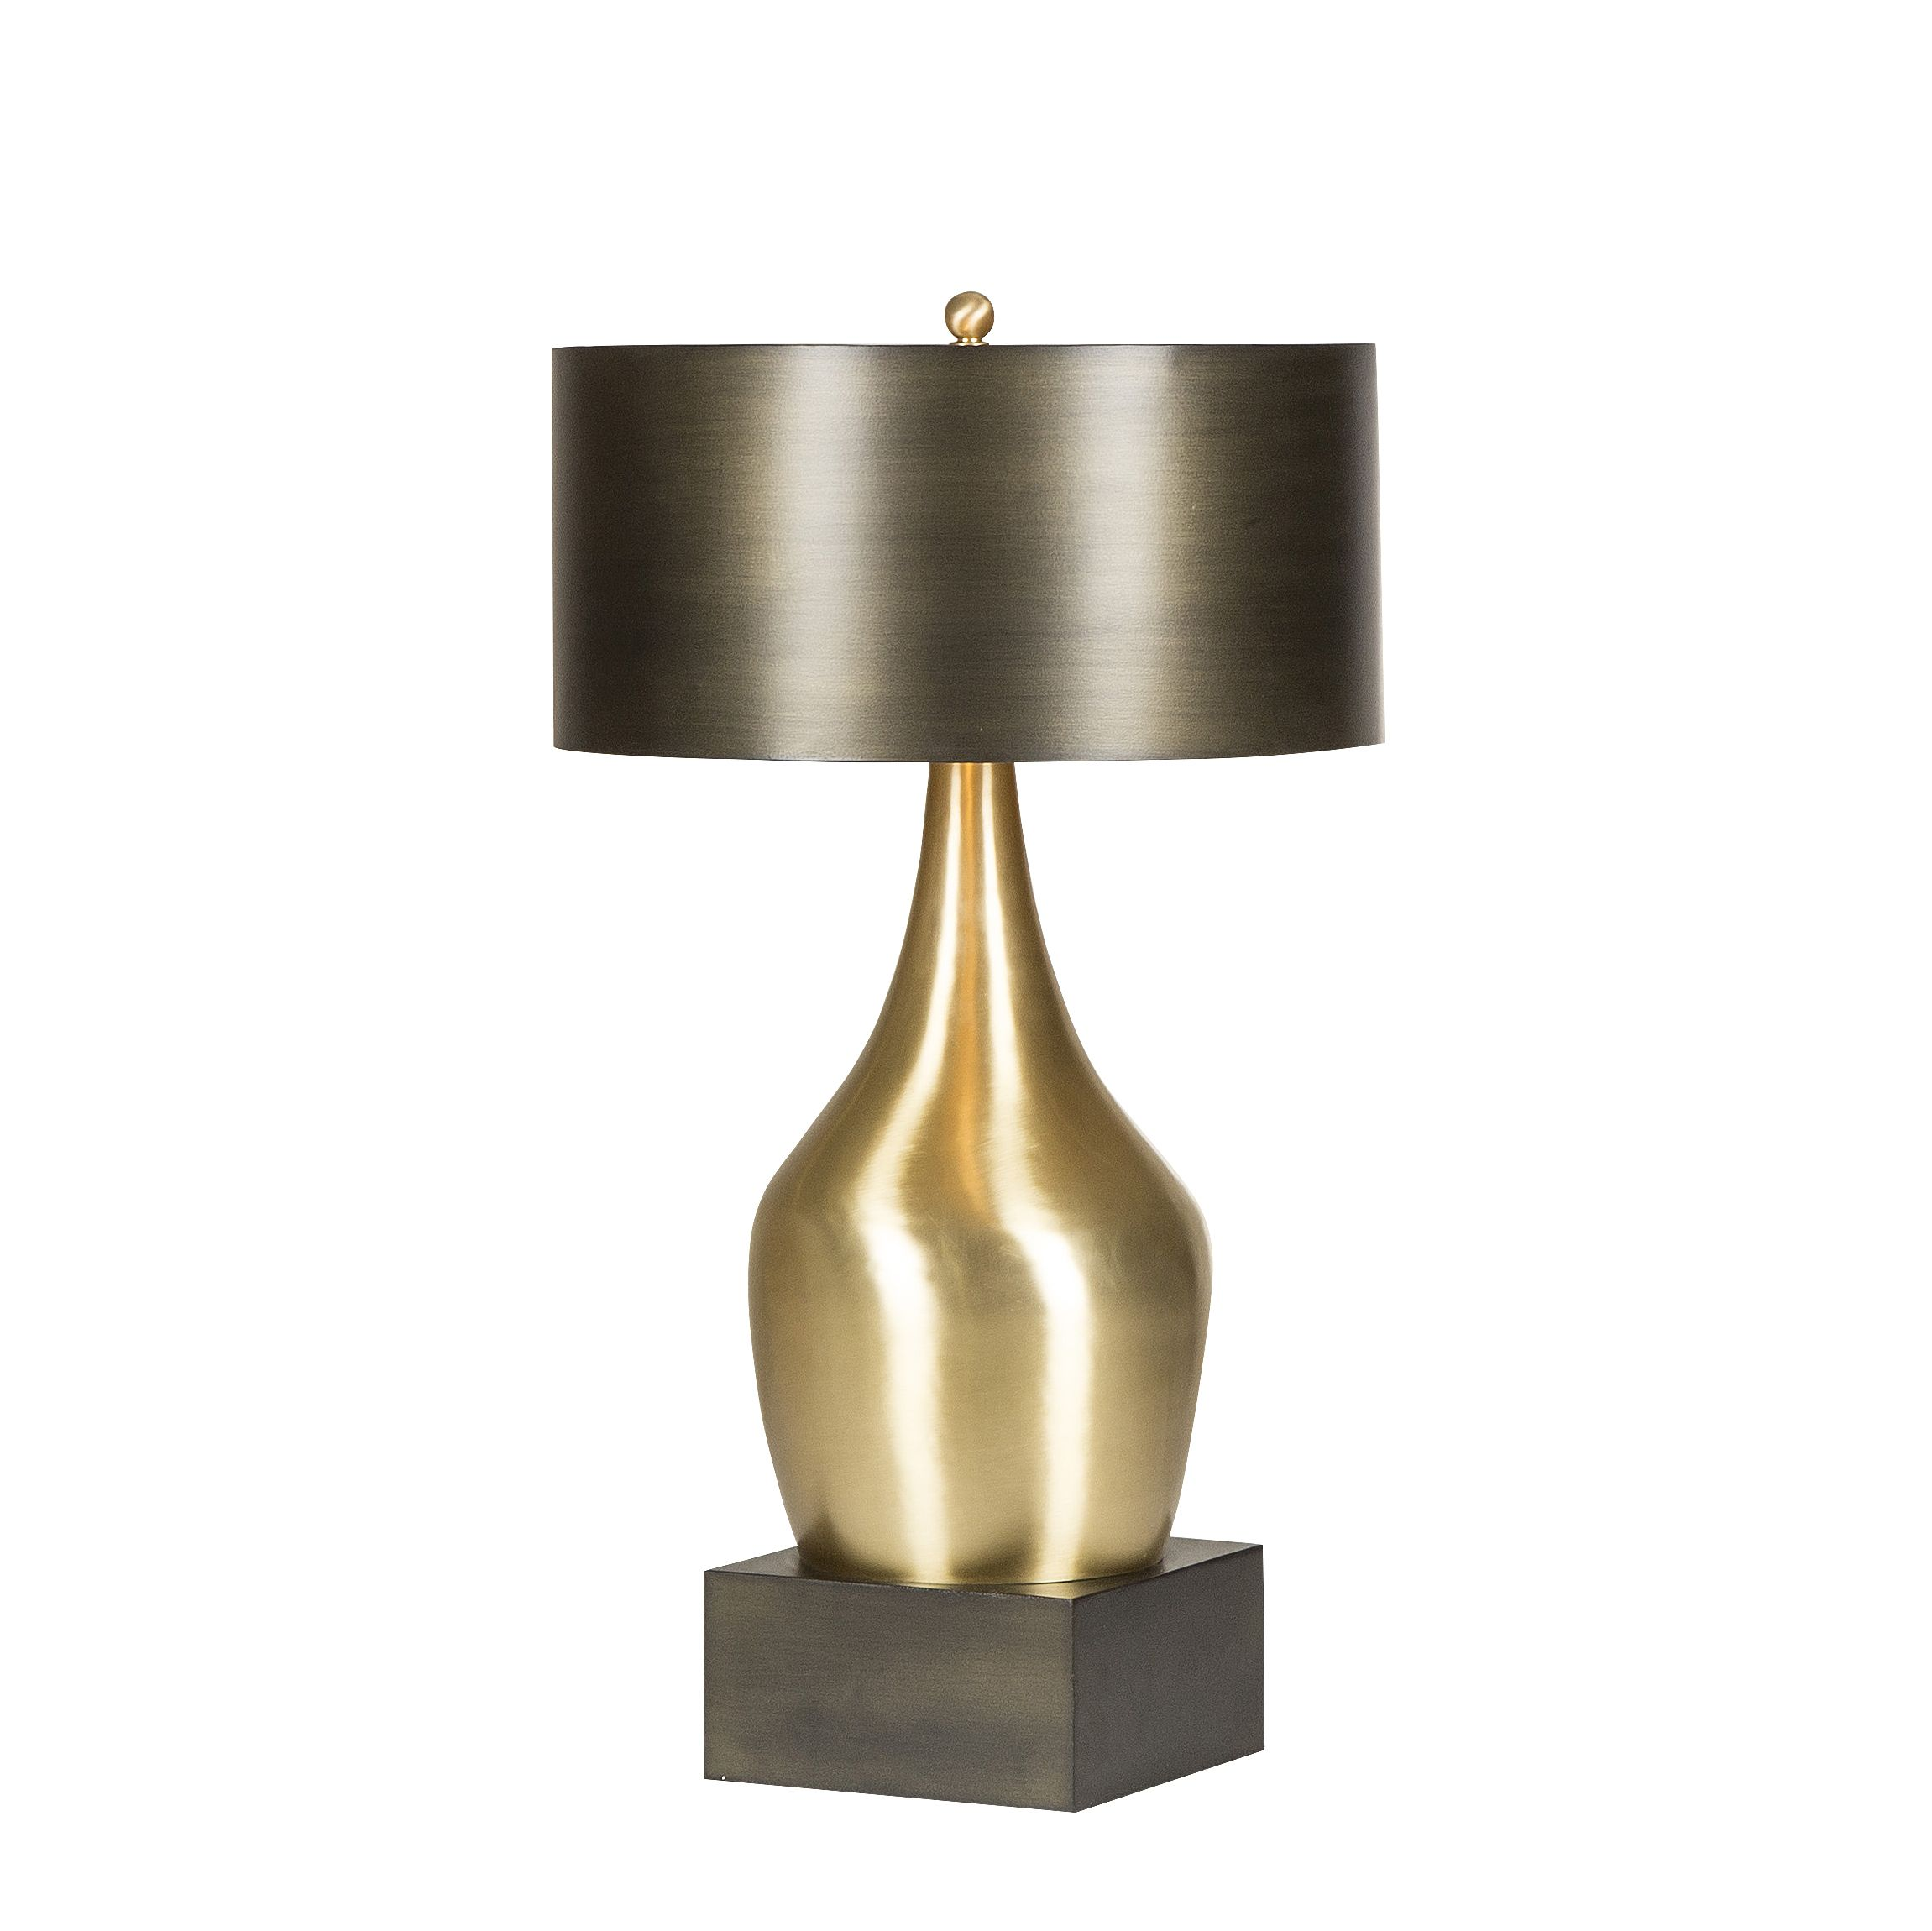 Lighting lamps gold lion table lamp this brushed brass table lighting lamps gold lion table lamp this brushed brass table lamp is topped geotapseo Gallery